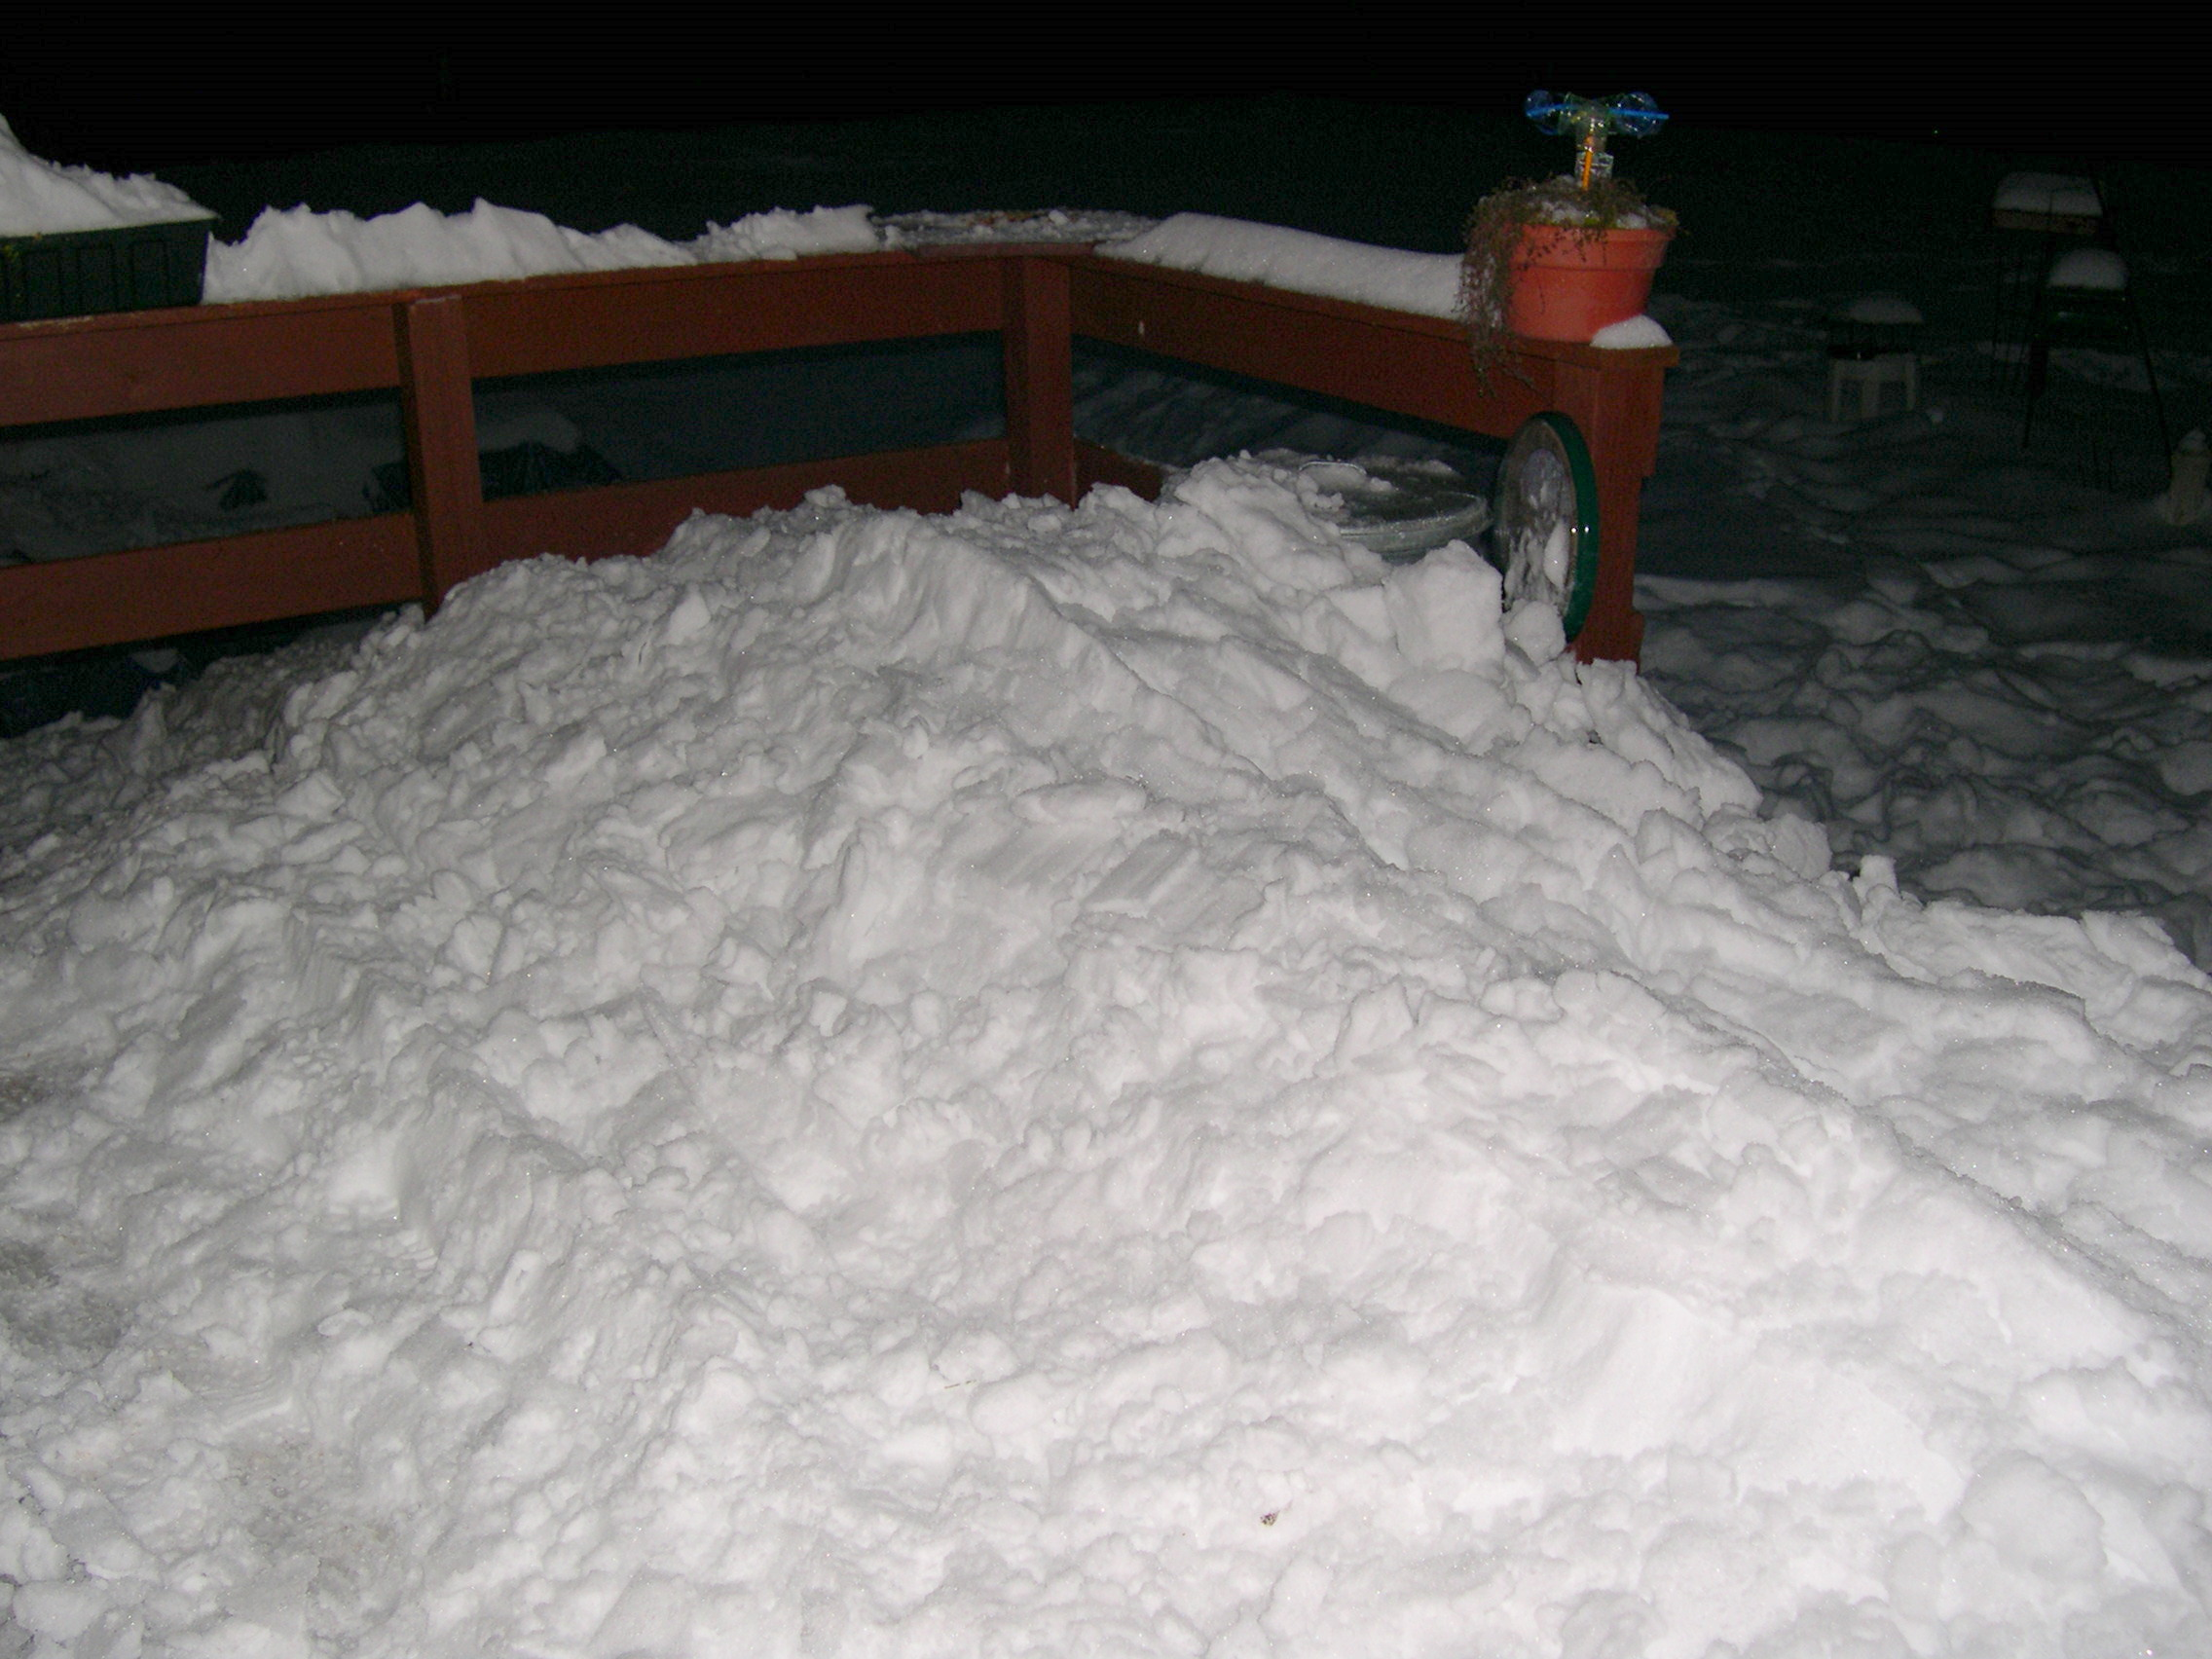 snow from the roof